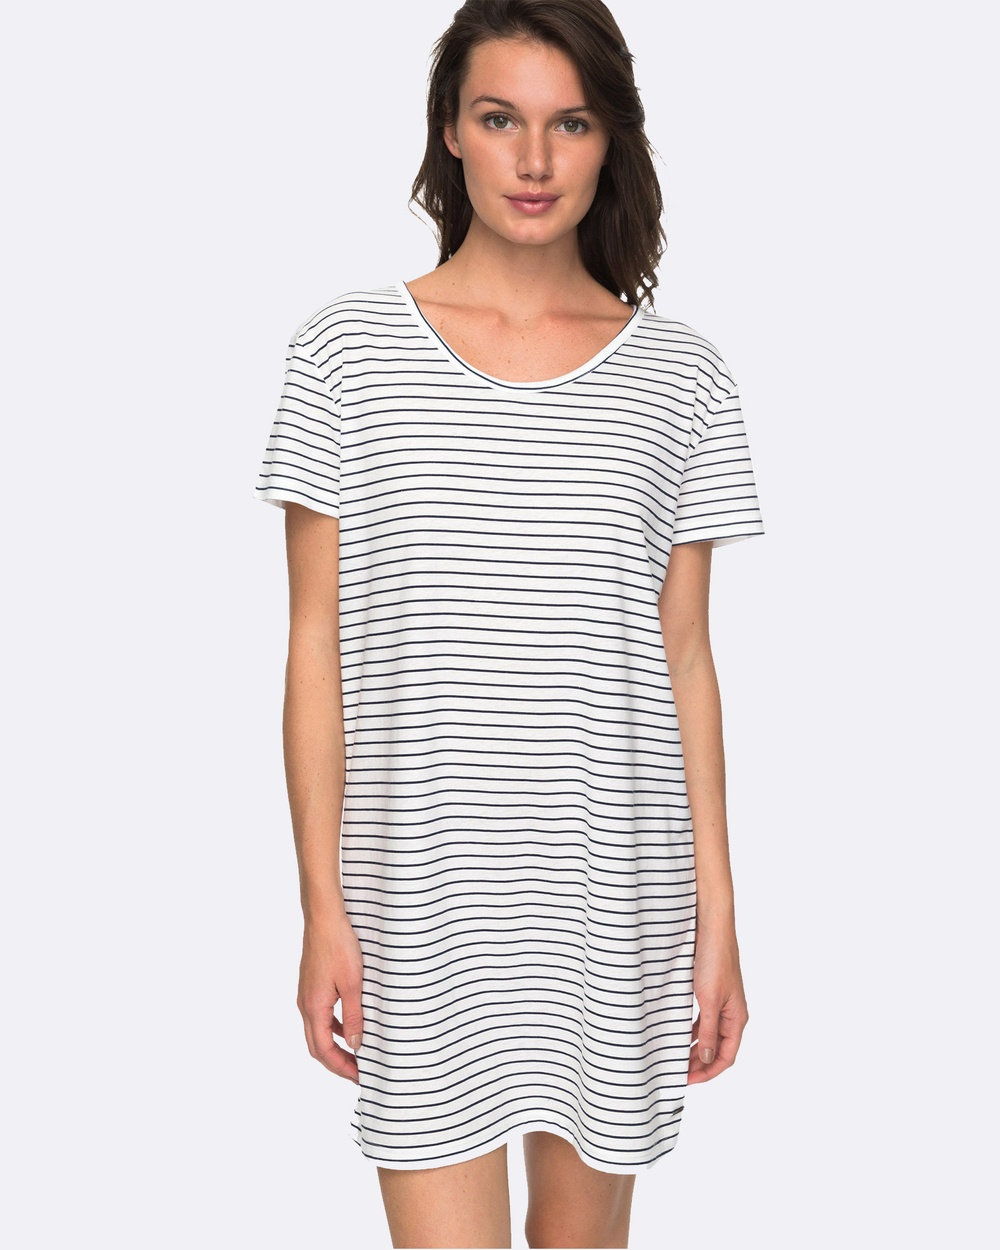 Roxy Womens Just Simple Striped T Shirt Dress Swimwear DRESS BLUE JUST SIMP Womens Just Simple Striped T Shirt Dress